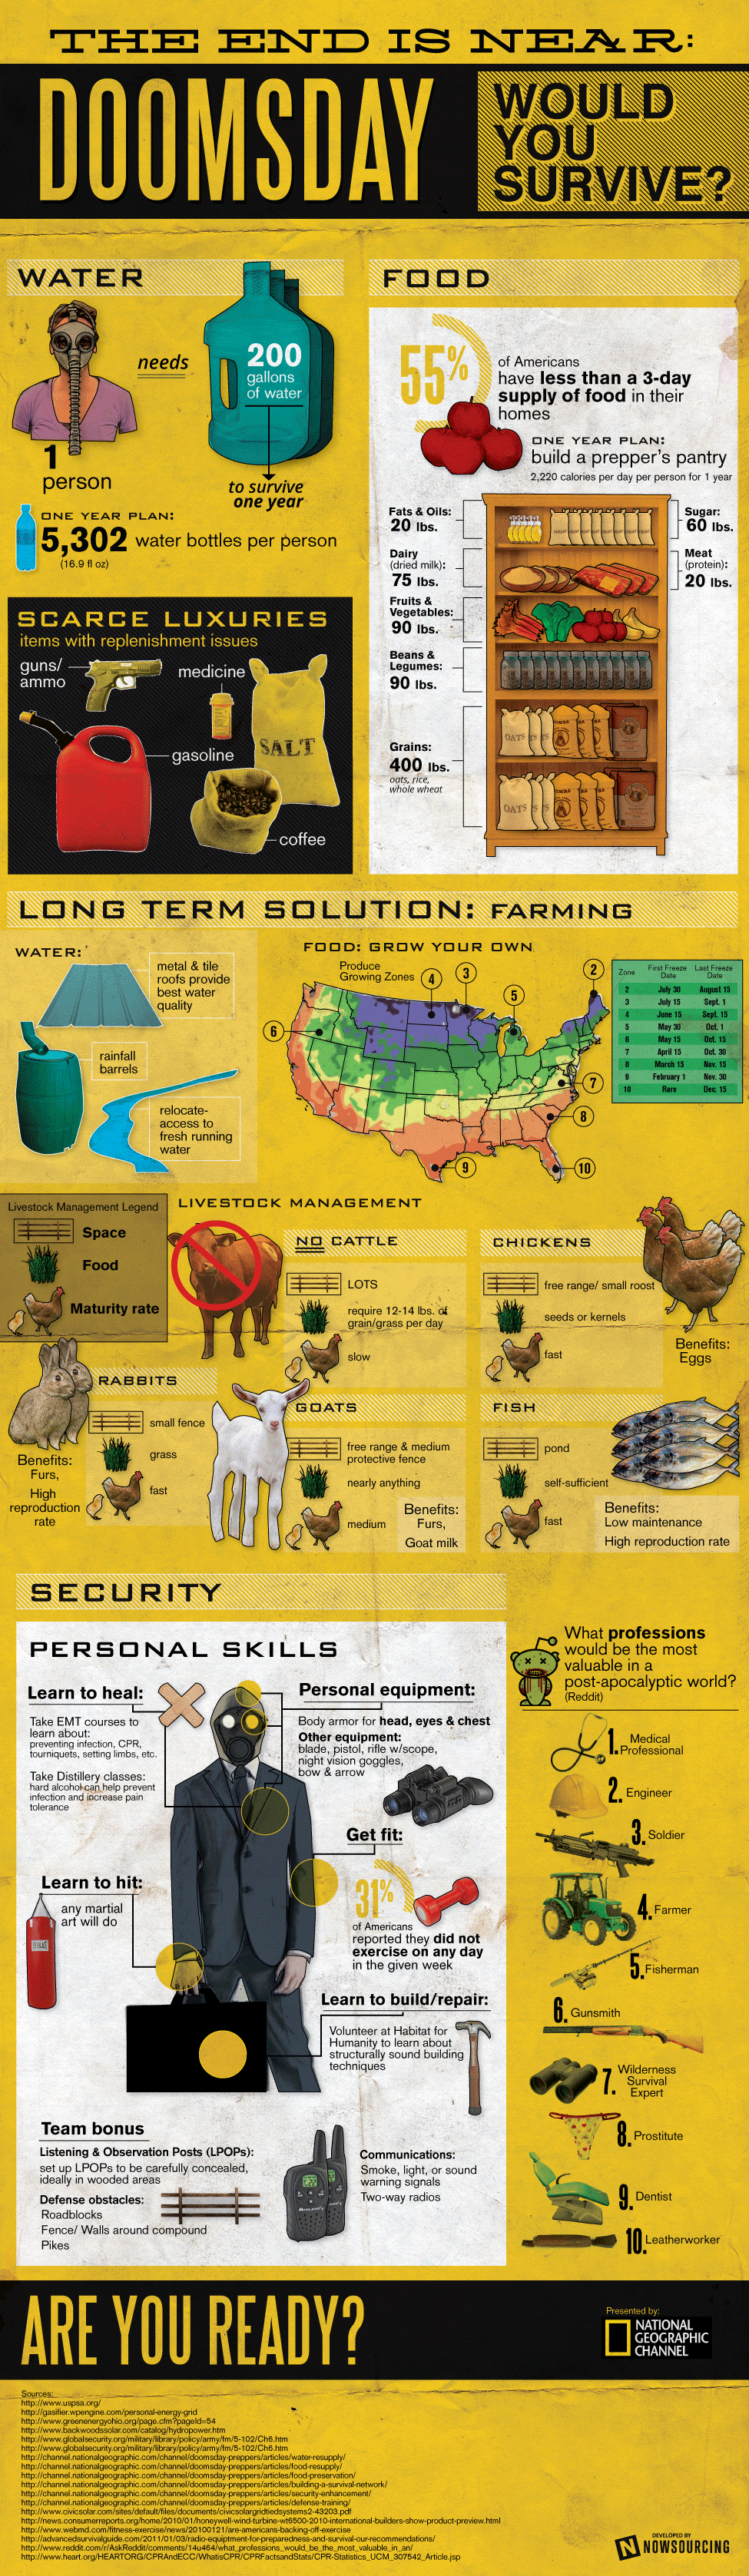 doomsday-preppers-survival-guide-infographic-yearzerosurvival